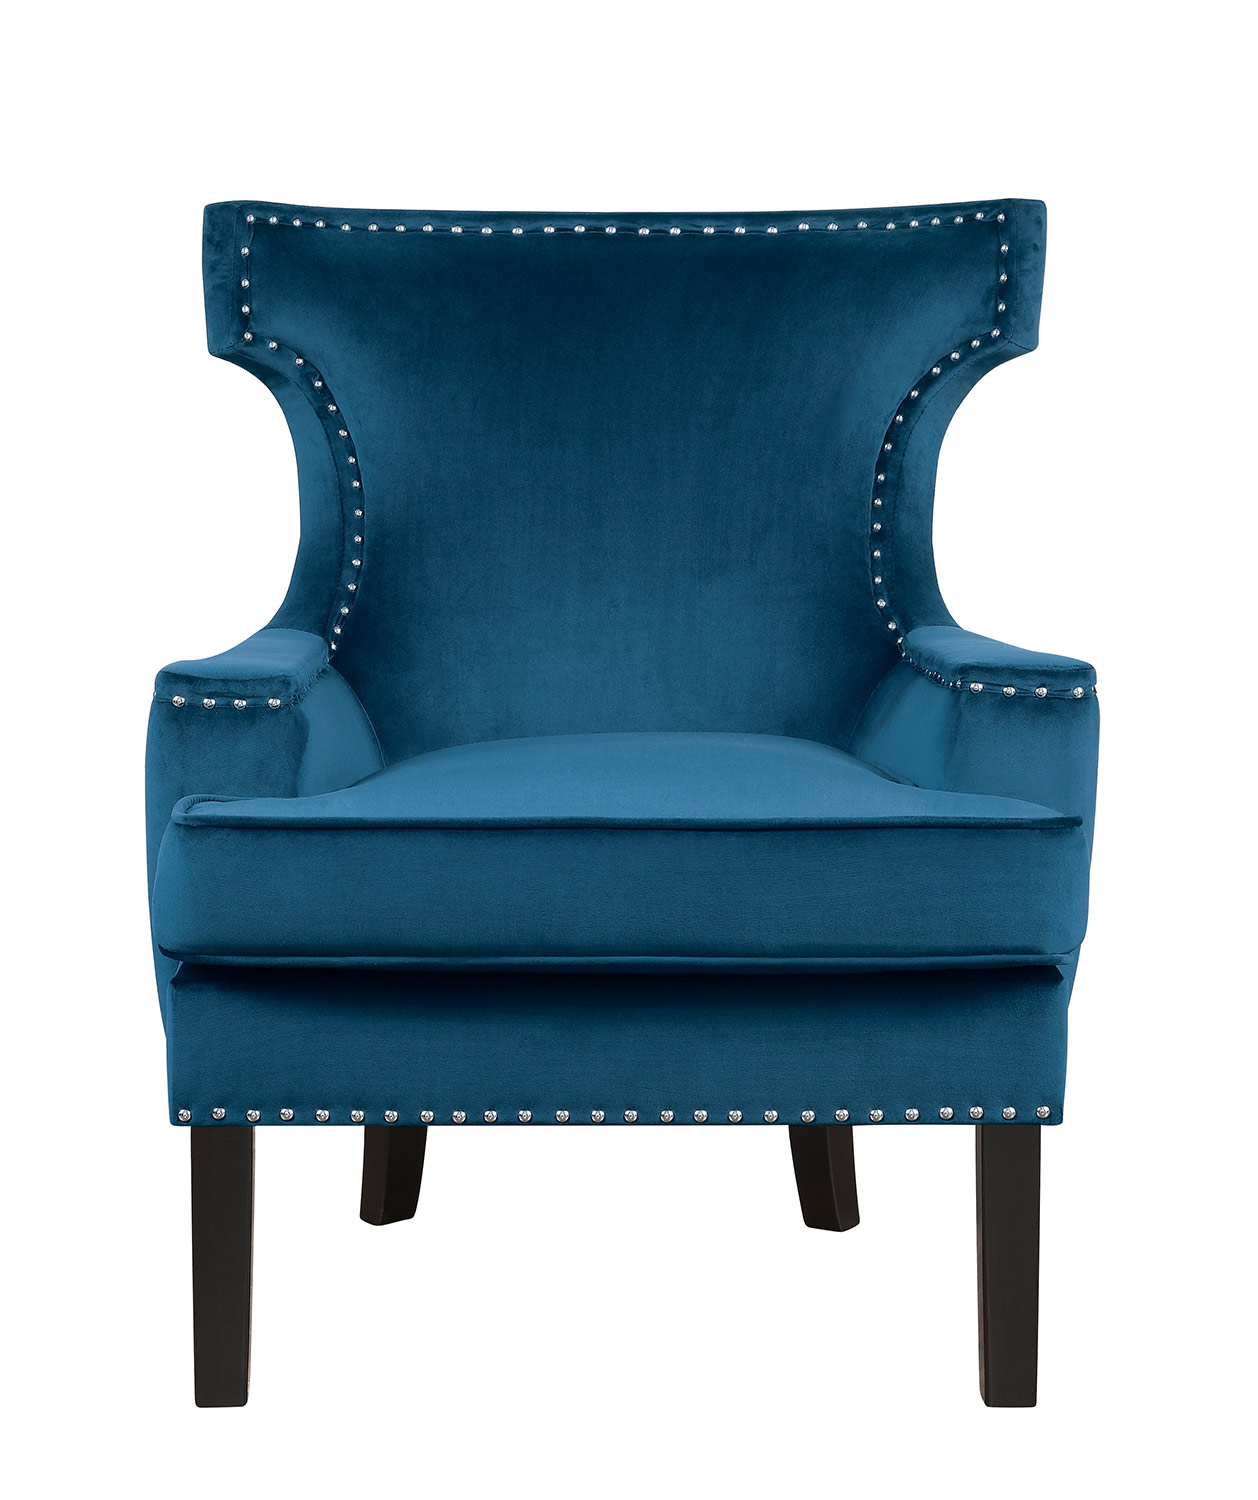 Homelegance Lapis Accent Chair - Blue